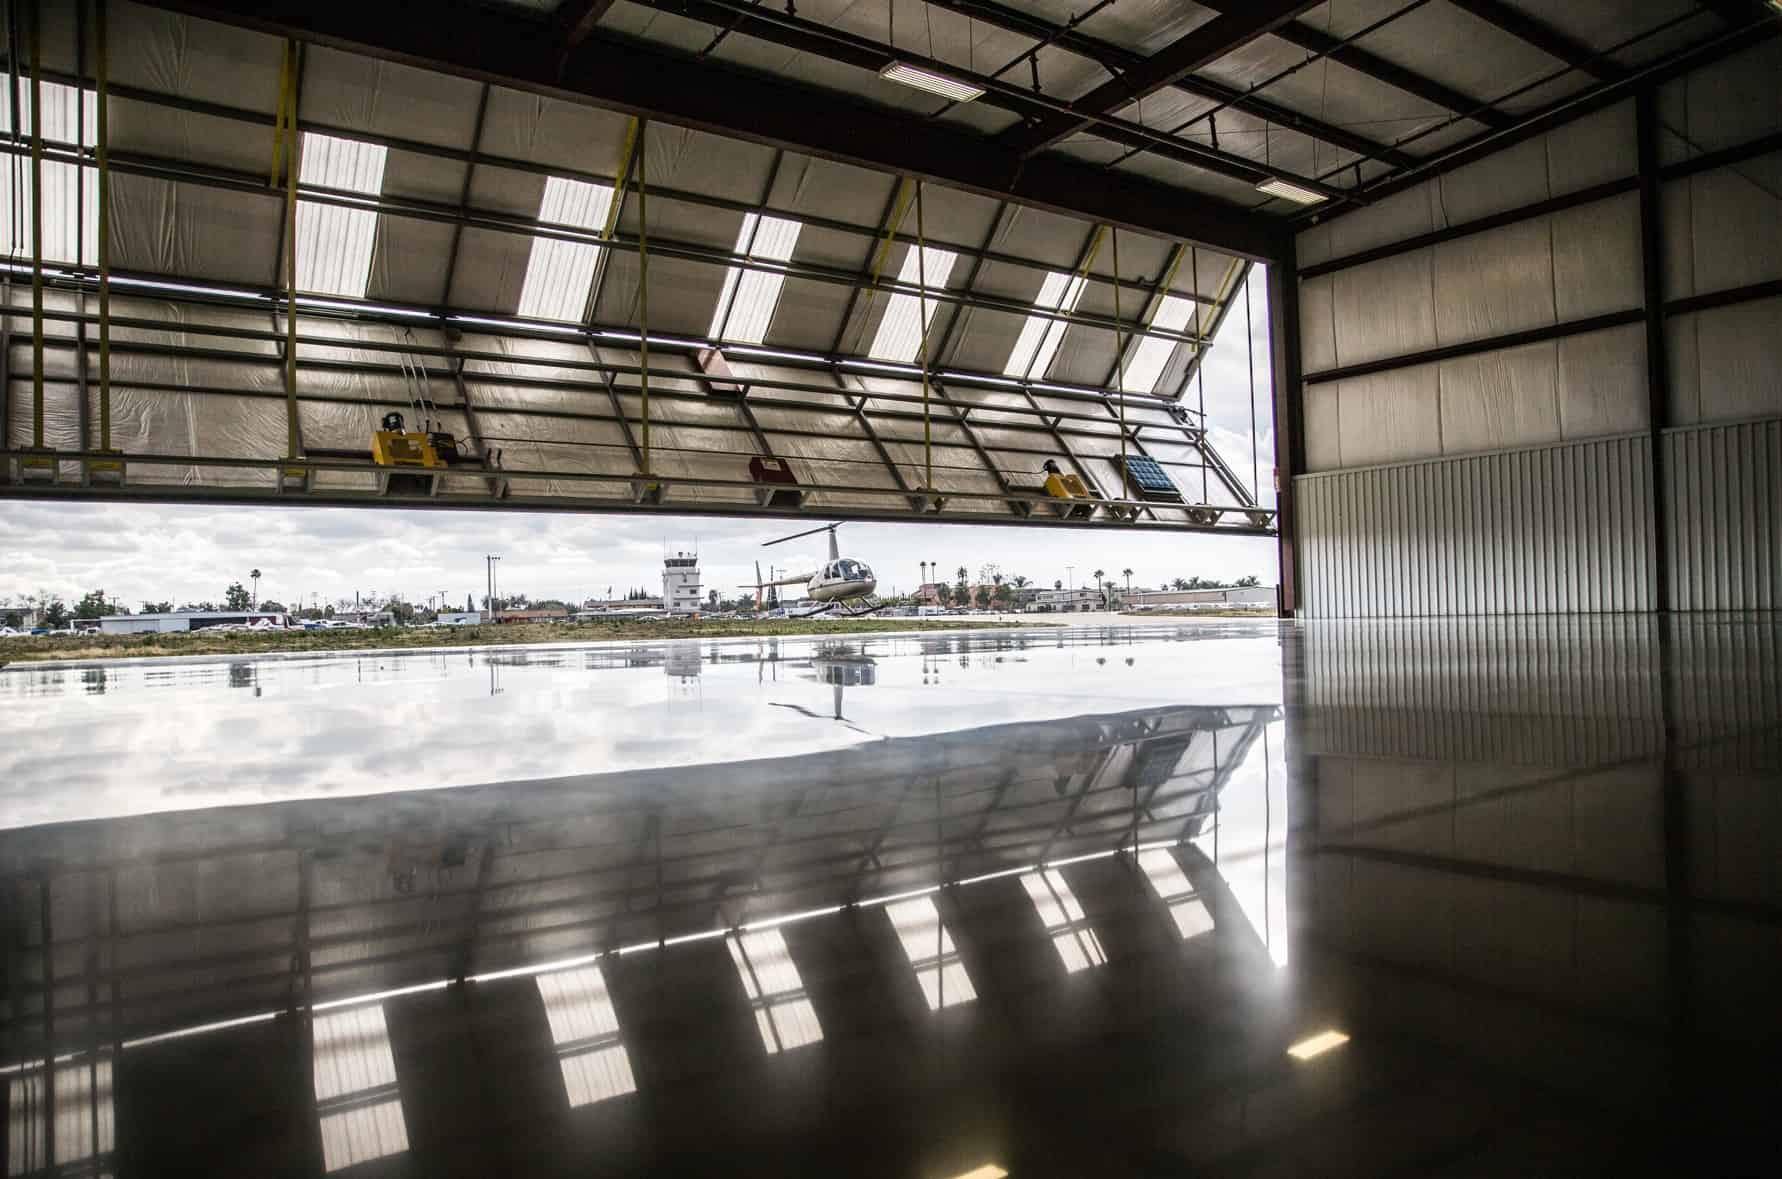 Unusual venues: airport hangar